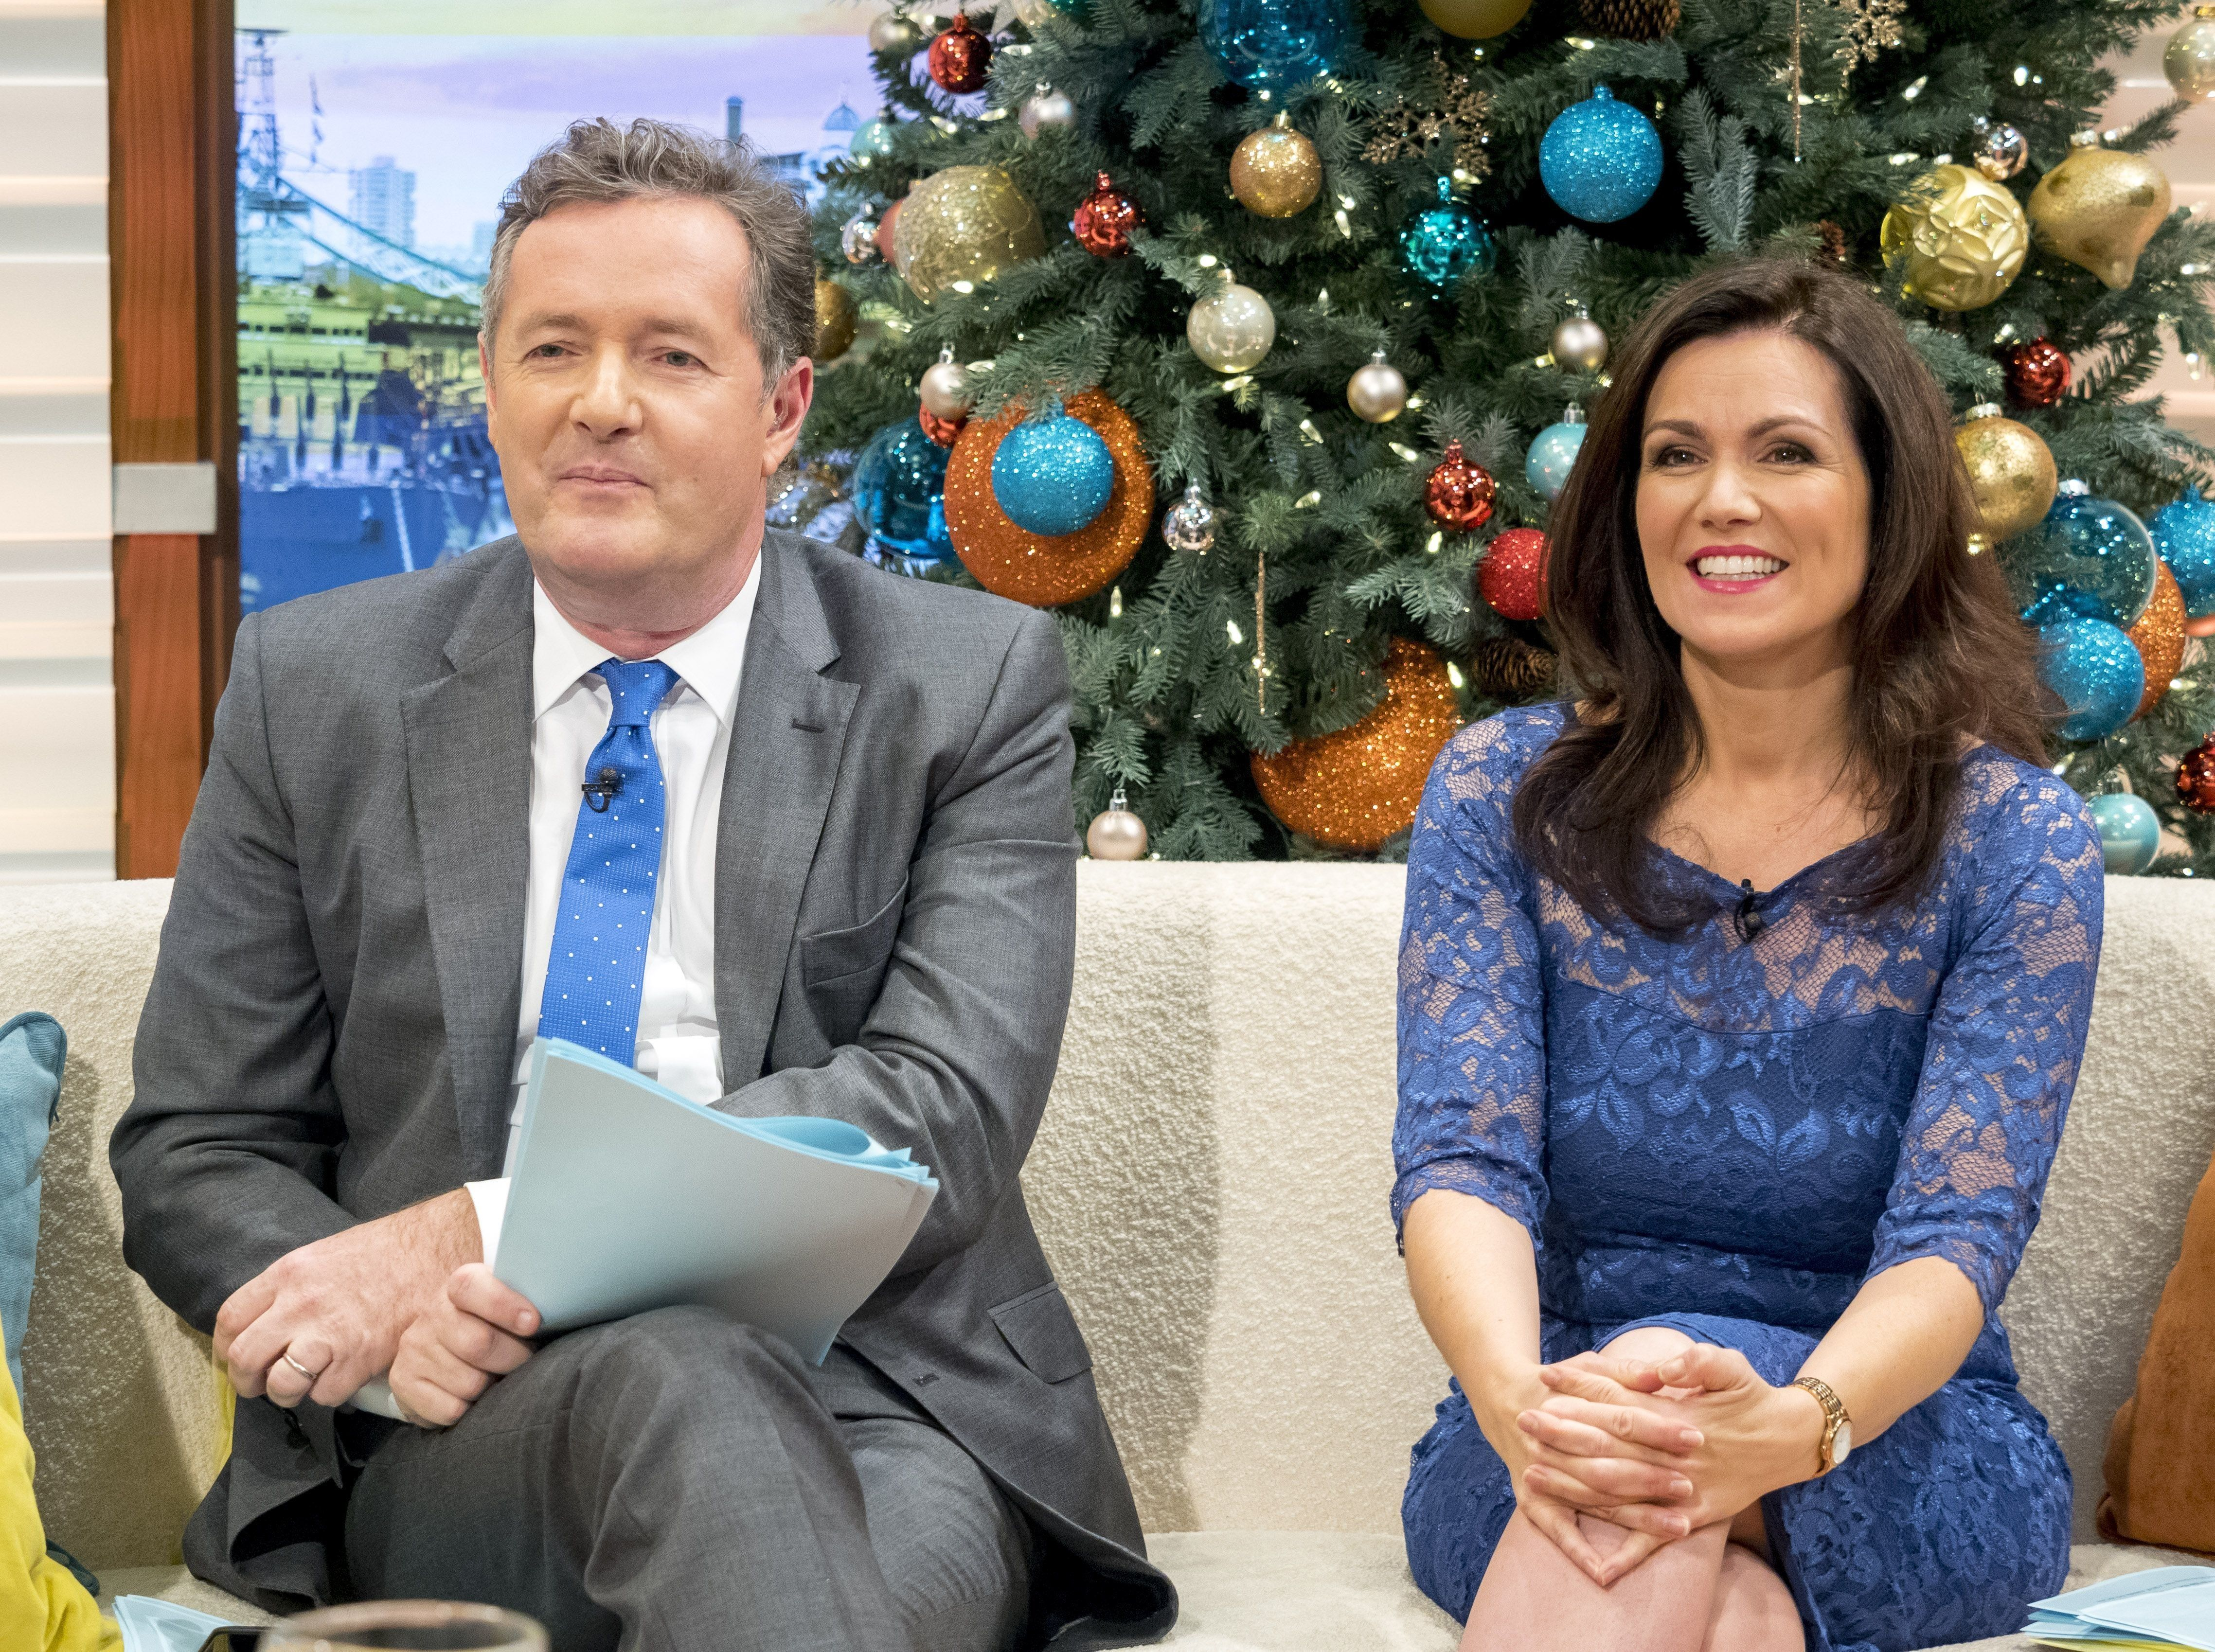 Susanna Reid On What It's Really Like Working With Piers Morgan Every Single